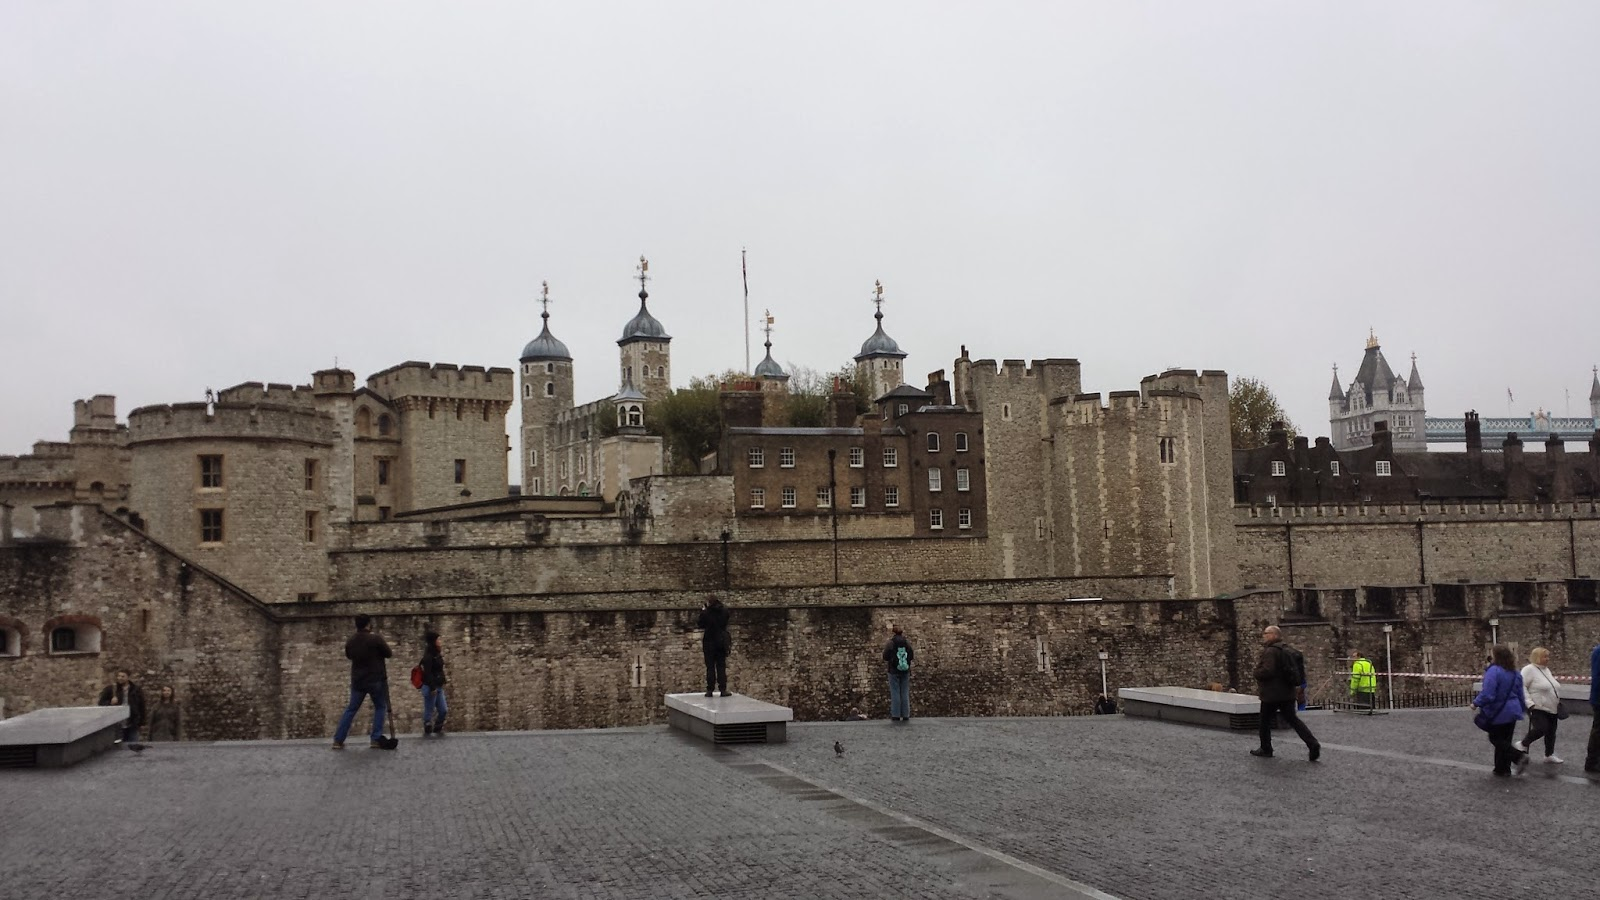 Tower of London - Honeymoon